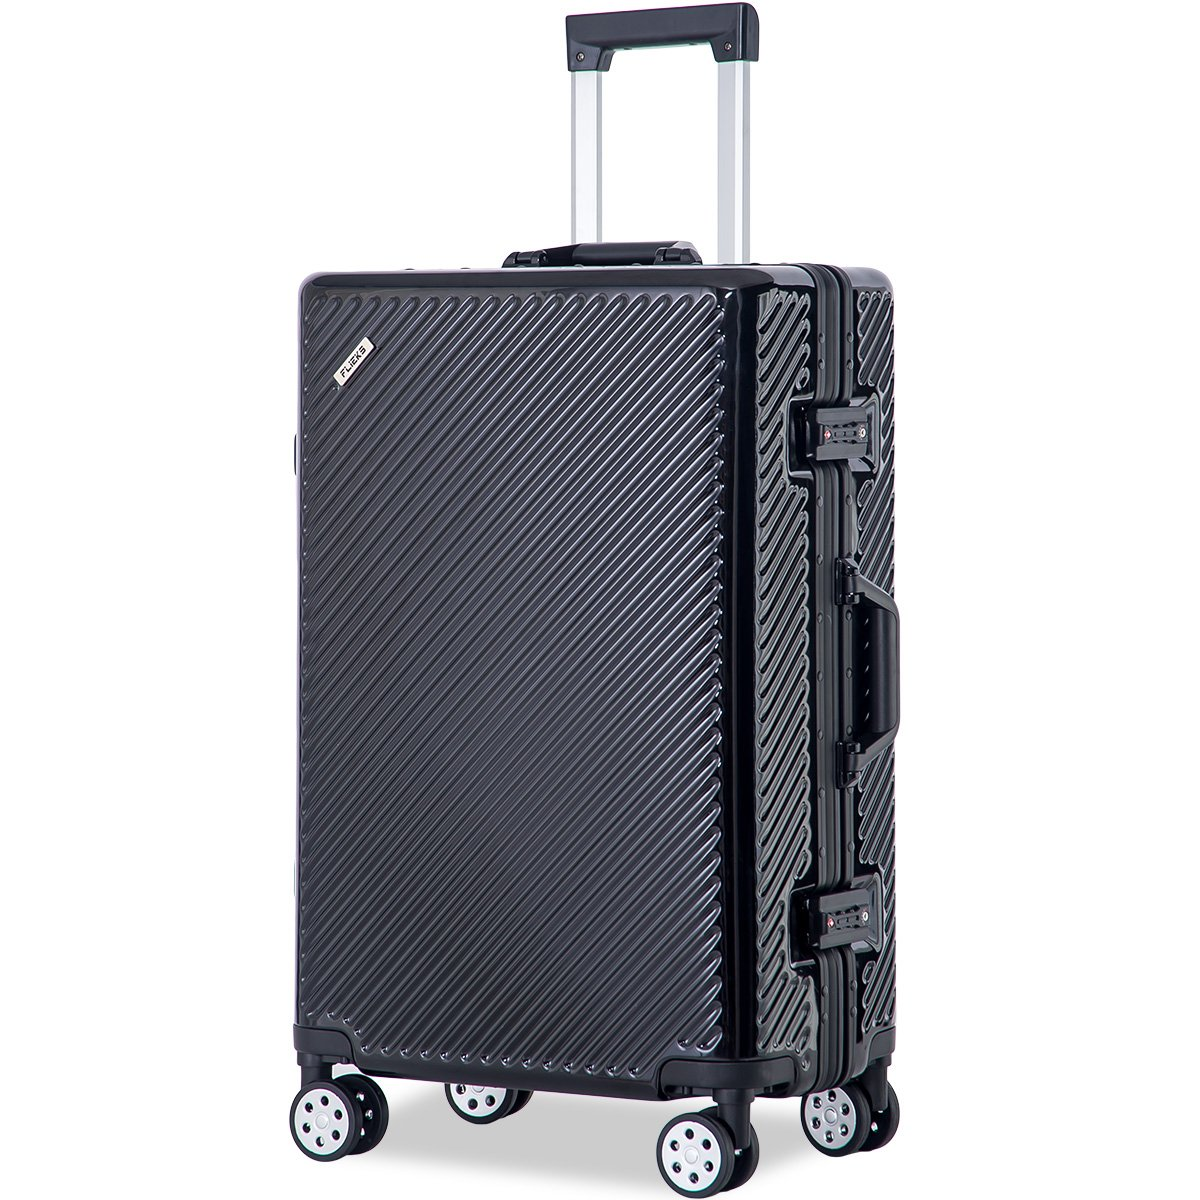 Flieks Aluminium Frame Luggage TSA Approved Suitcase (28-Consignment, Black)